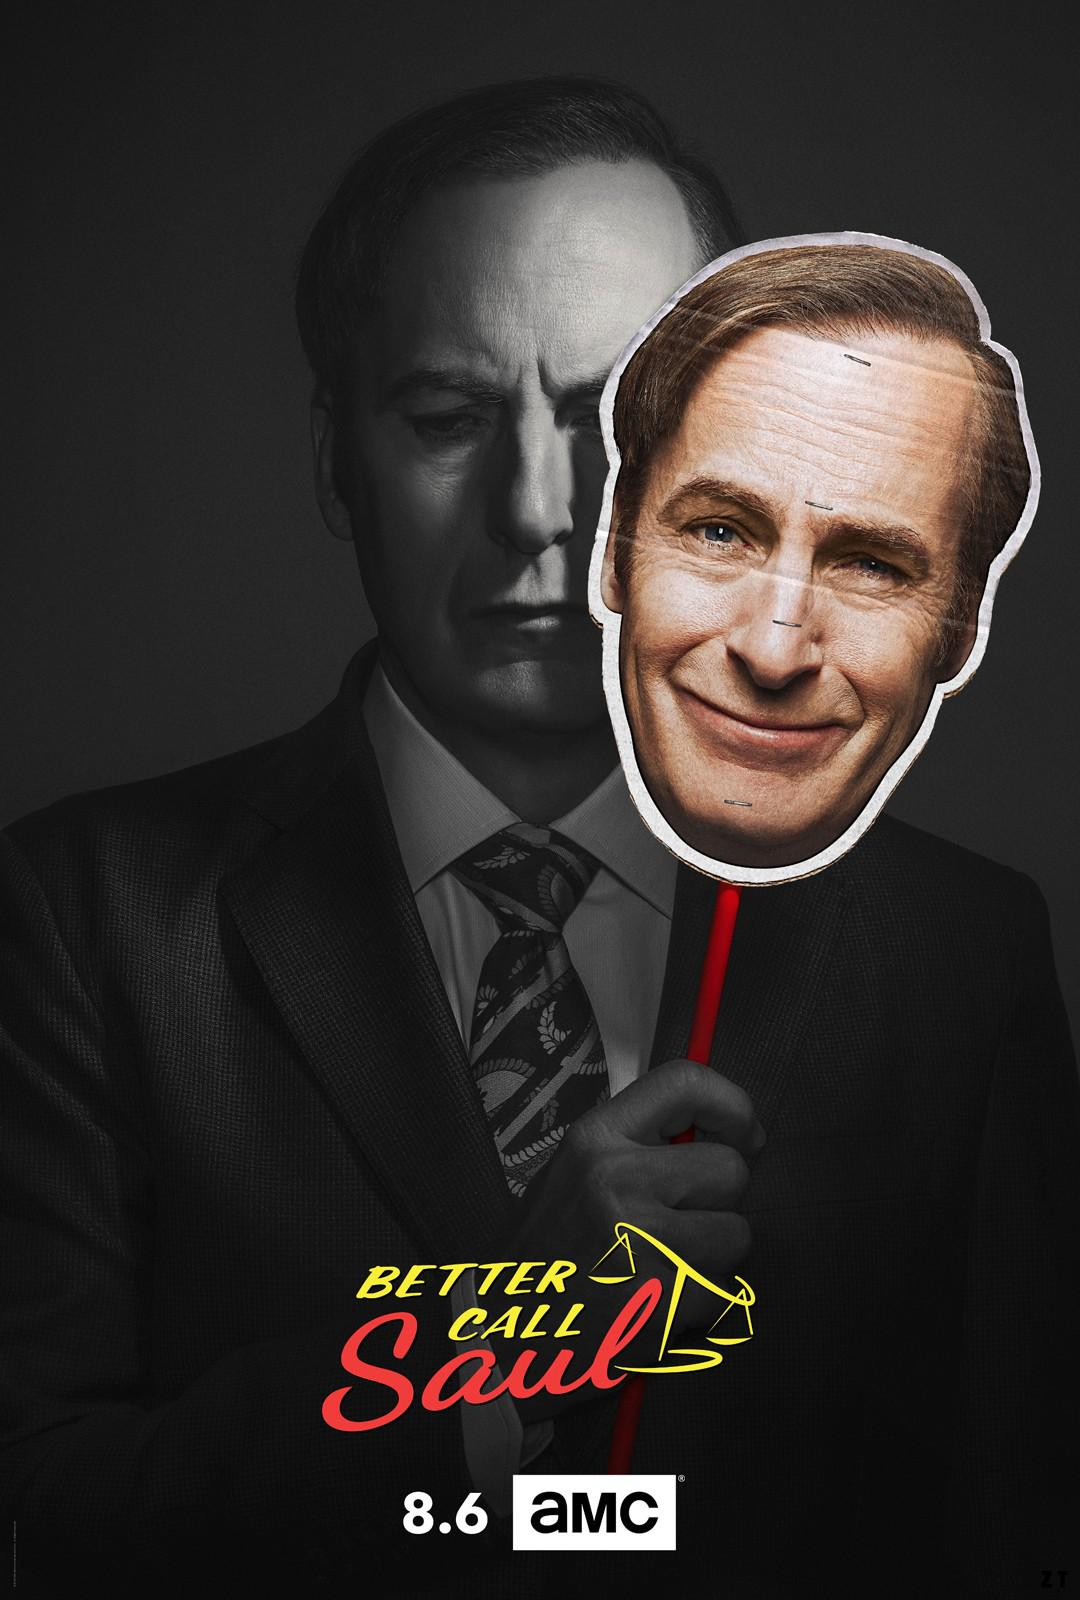 Telecharger Better Call Saul- Saison 4  [03/??] FRENCH | Qualité HDTV